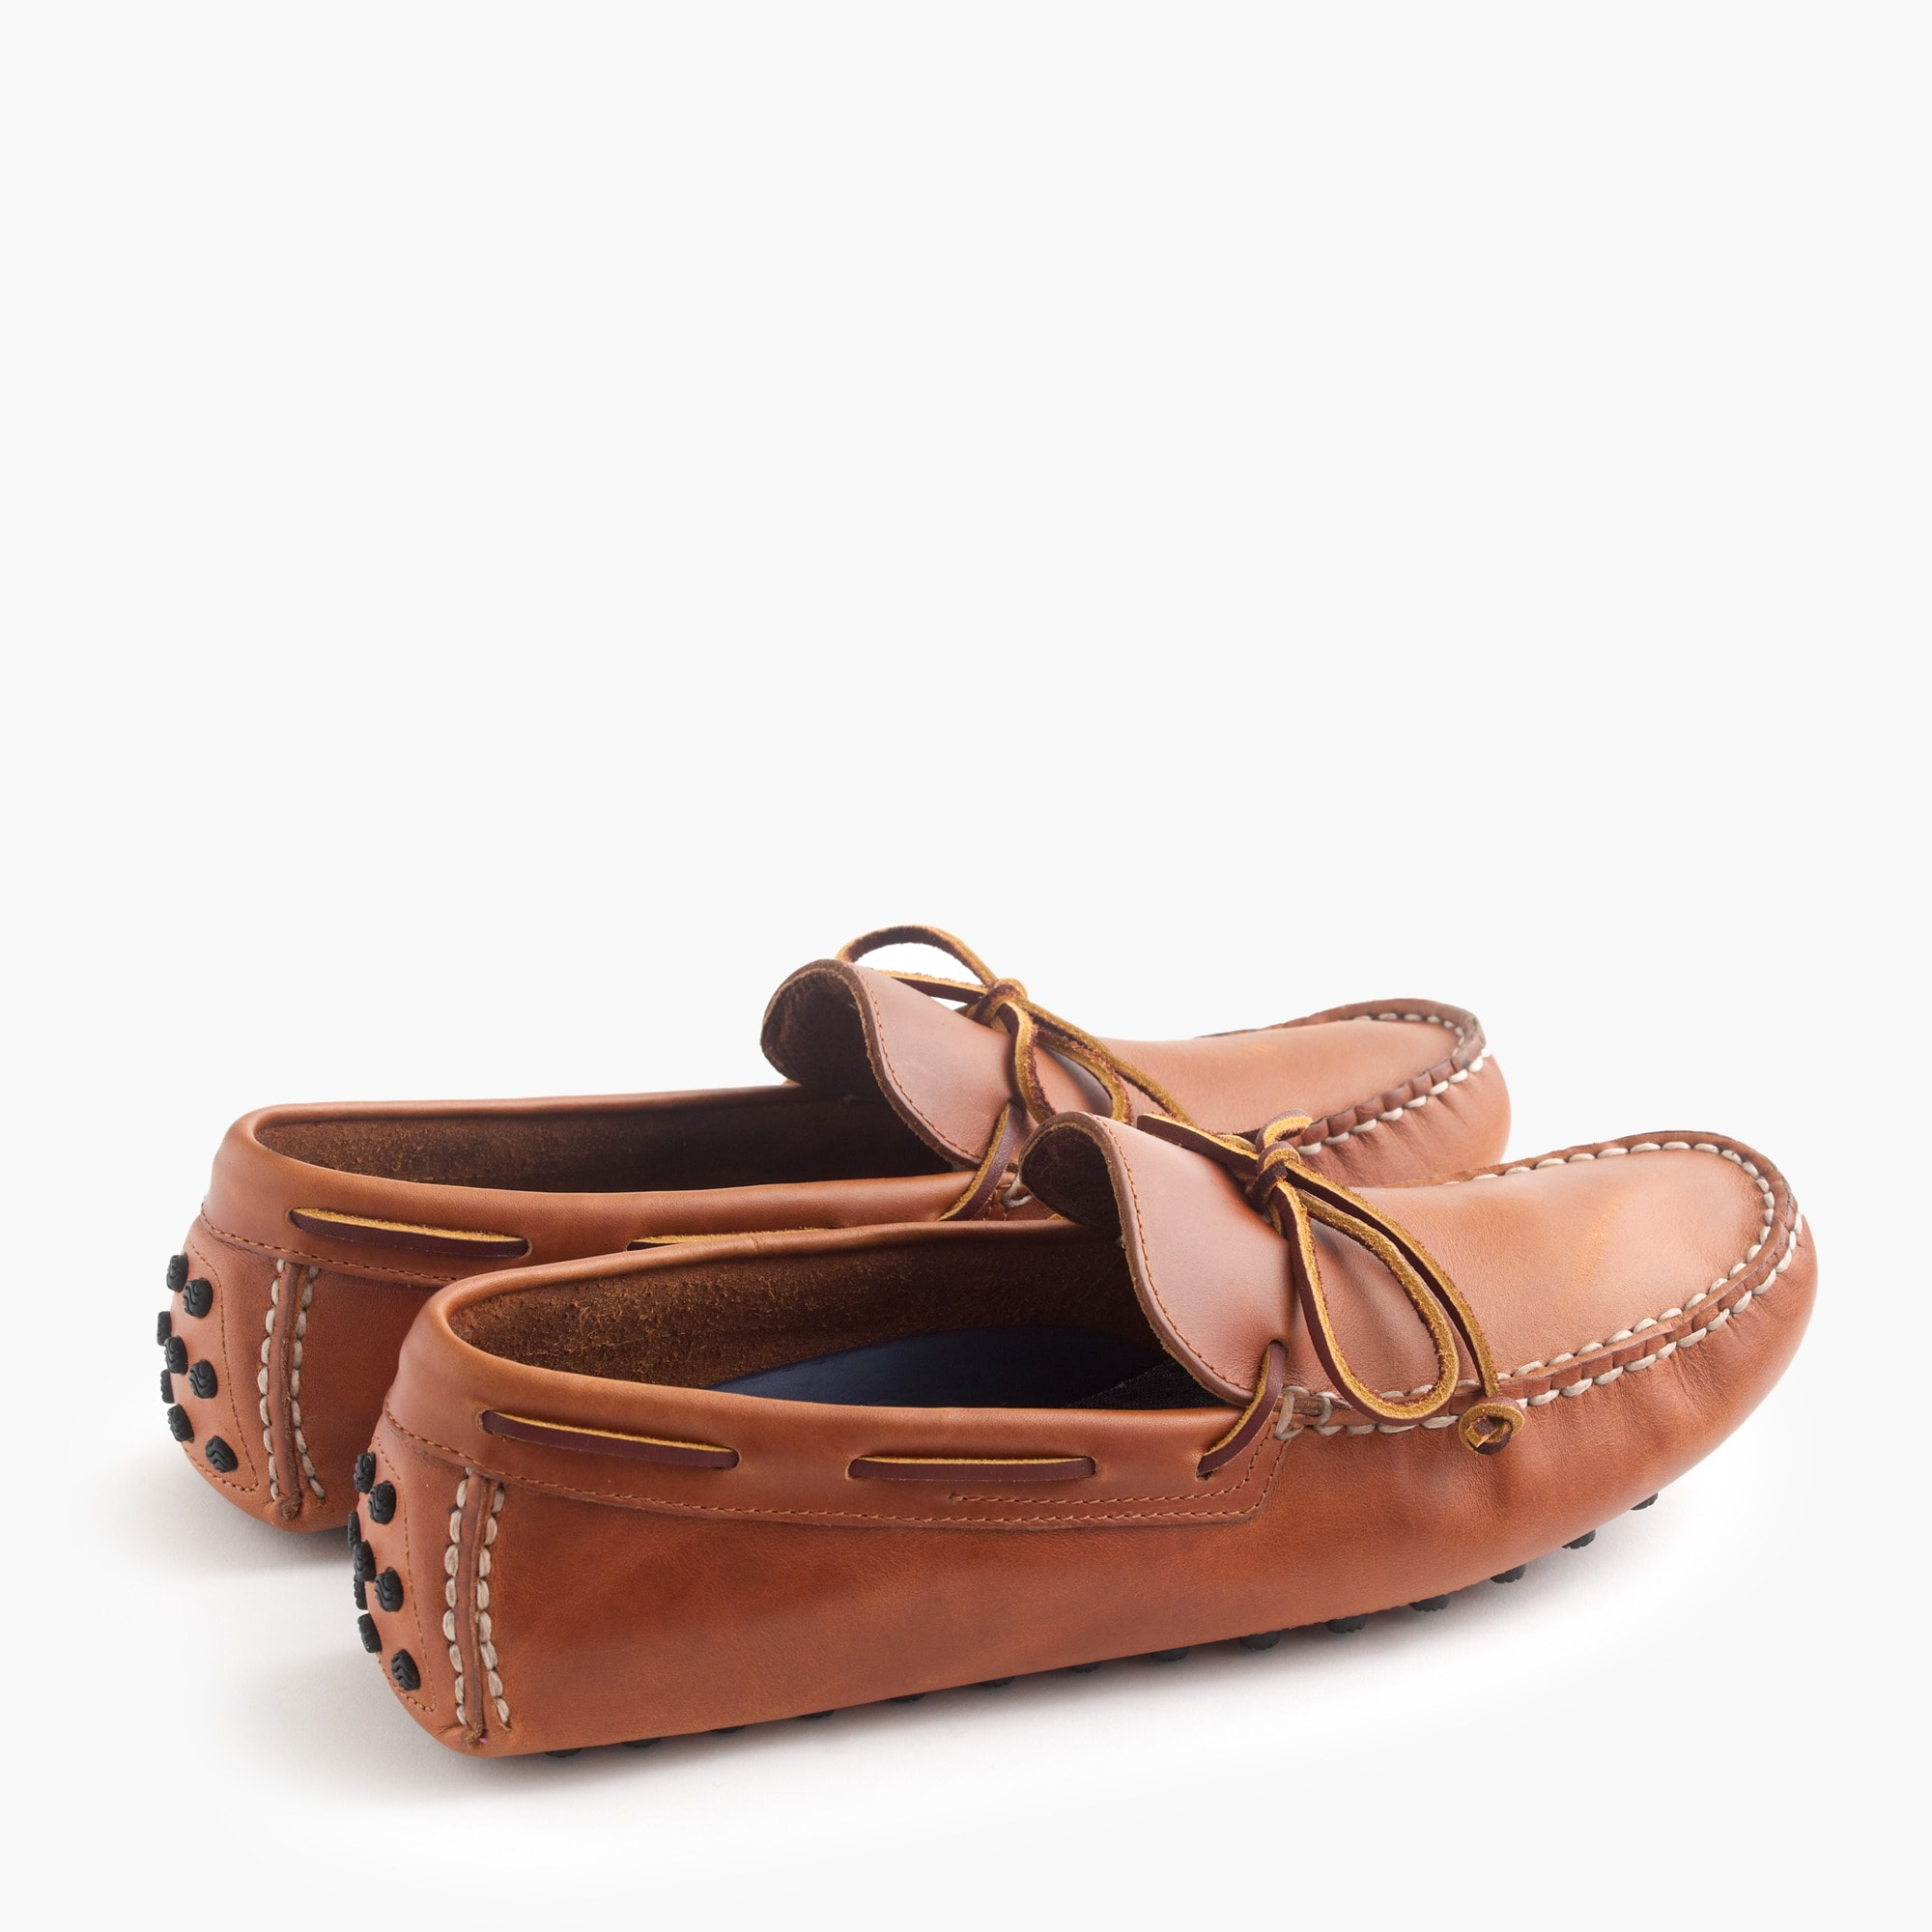 Sperry® for J.Crew driving moccasins